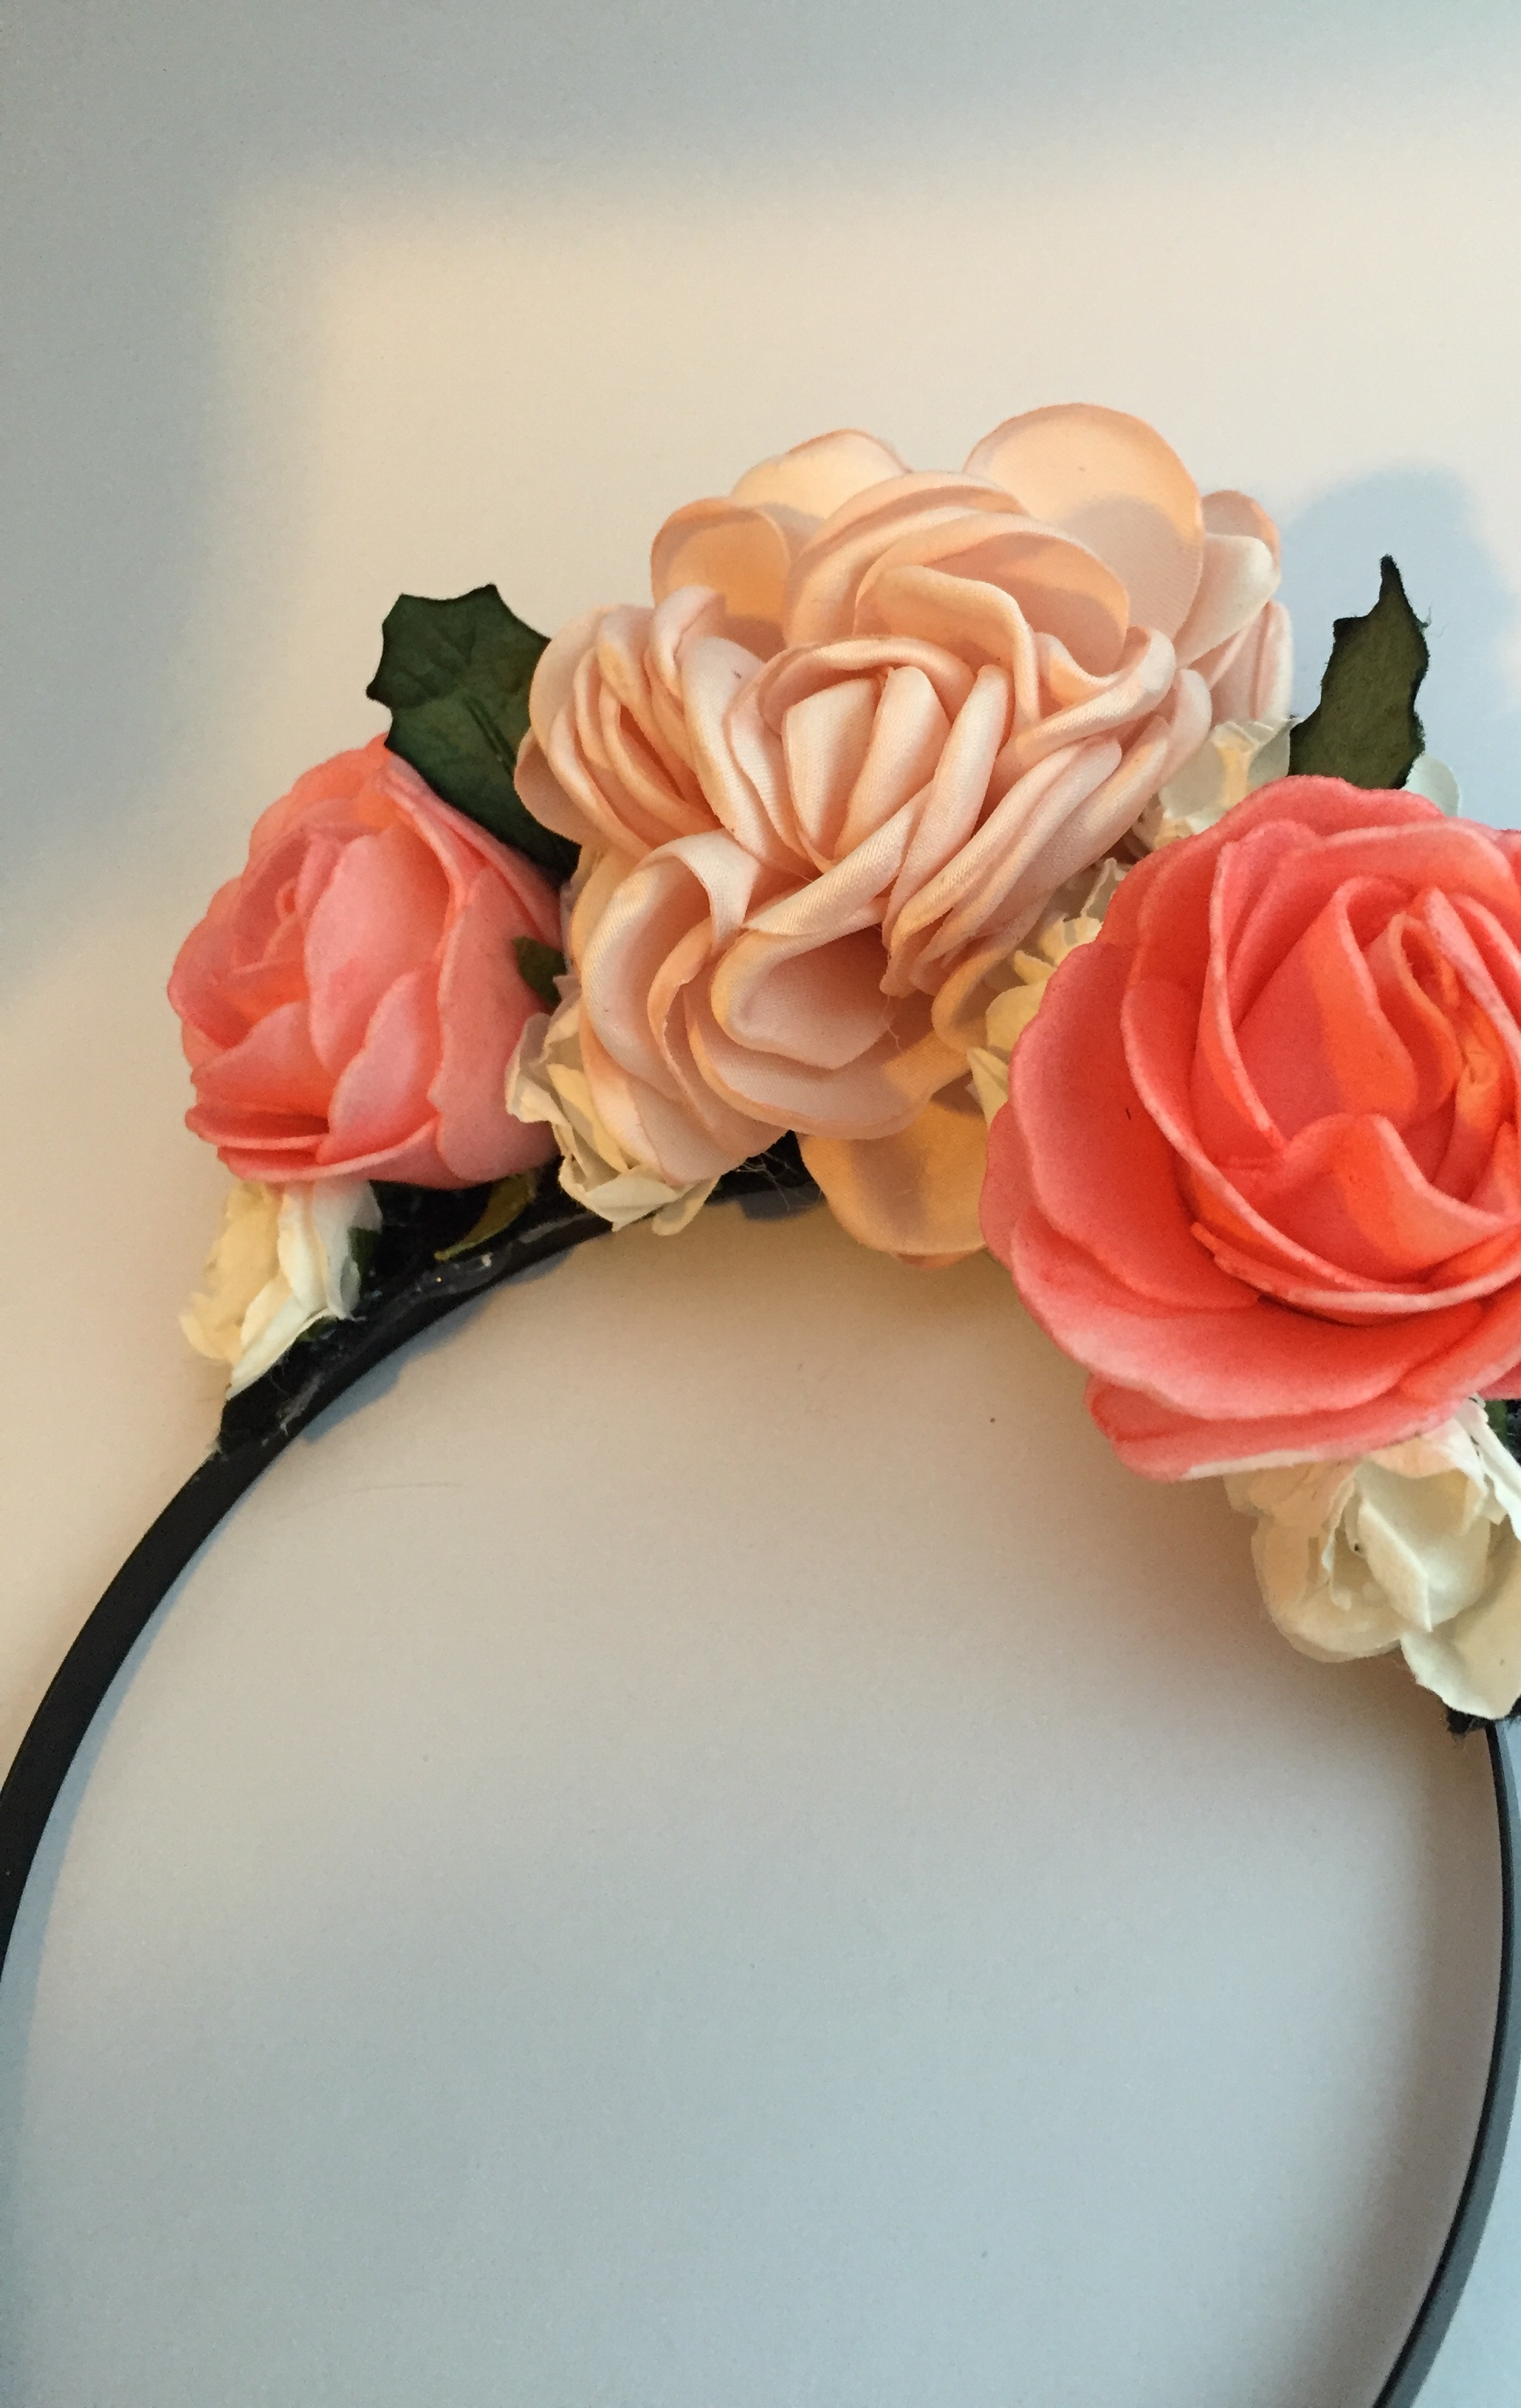 Shades of Peach Floral Headband Flowers Paper Foam Satin Girls Women s fb6ab8b7d7e